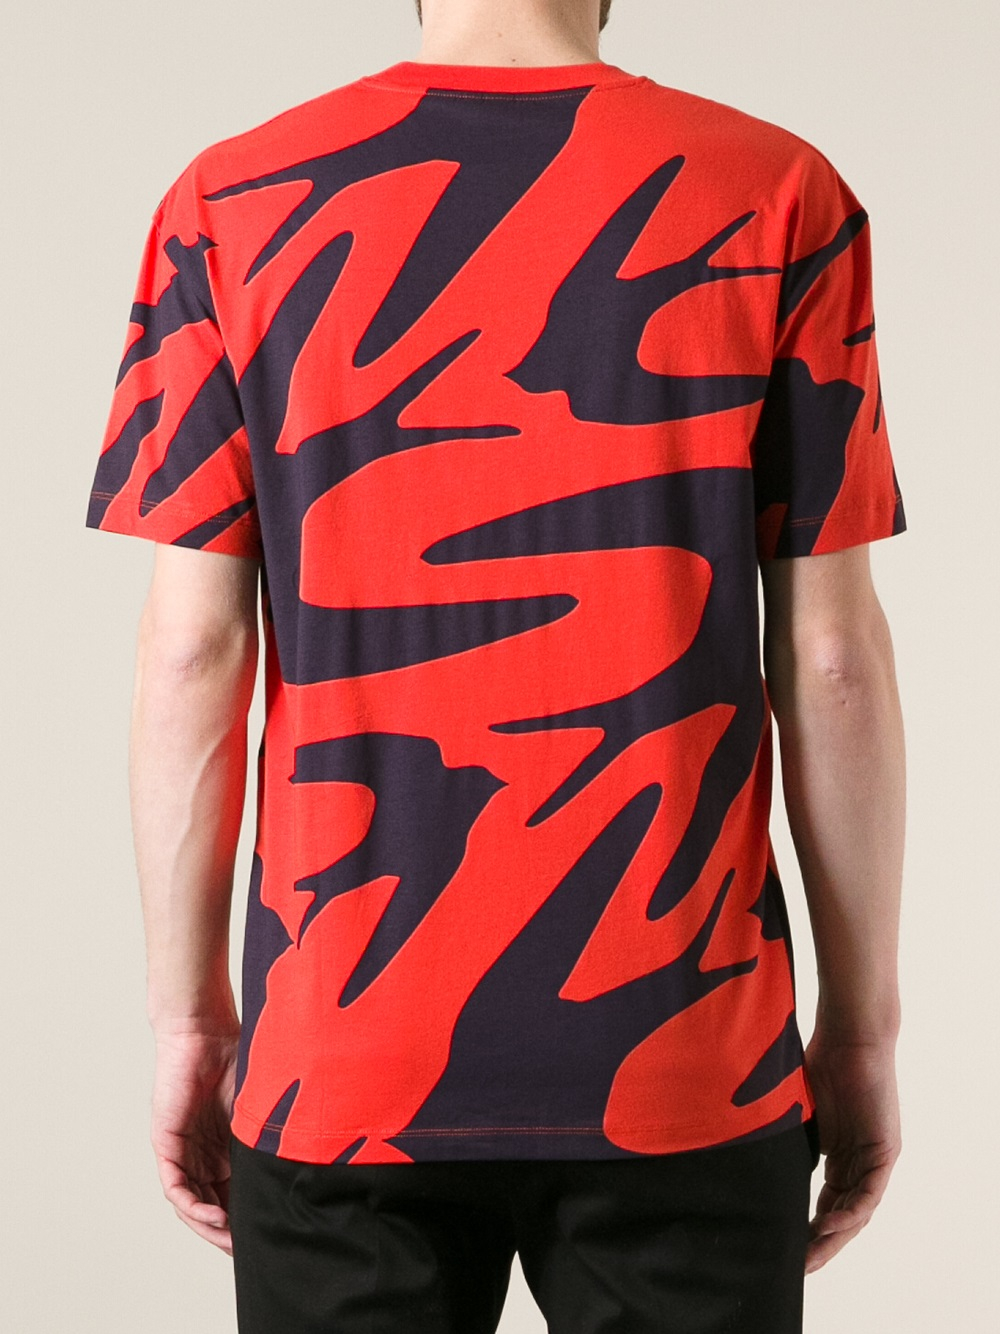 McQ Swallow Print Tshirt in Yellow & Orange (Red) for Men